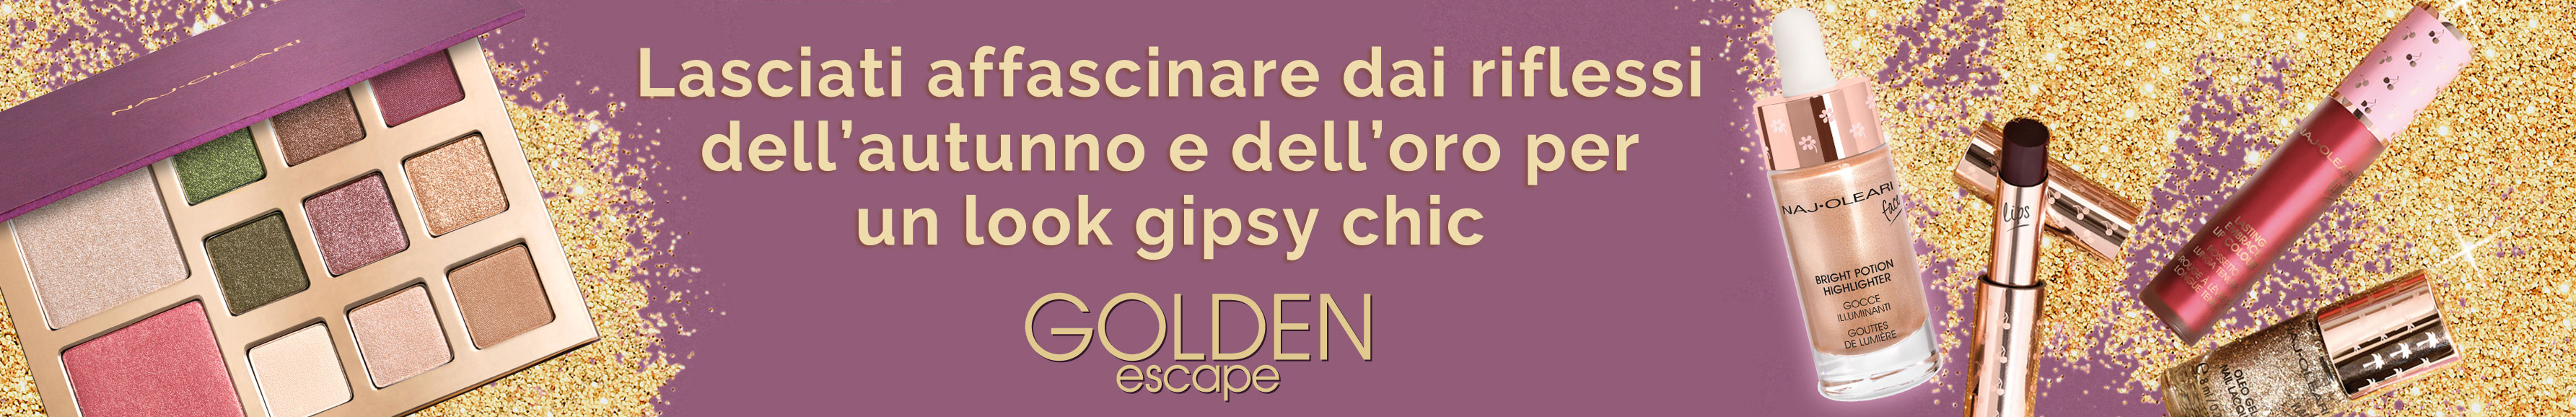 Naj Oleari Beauty - Golden Escape